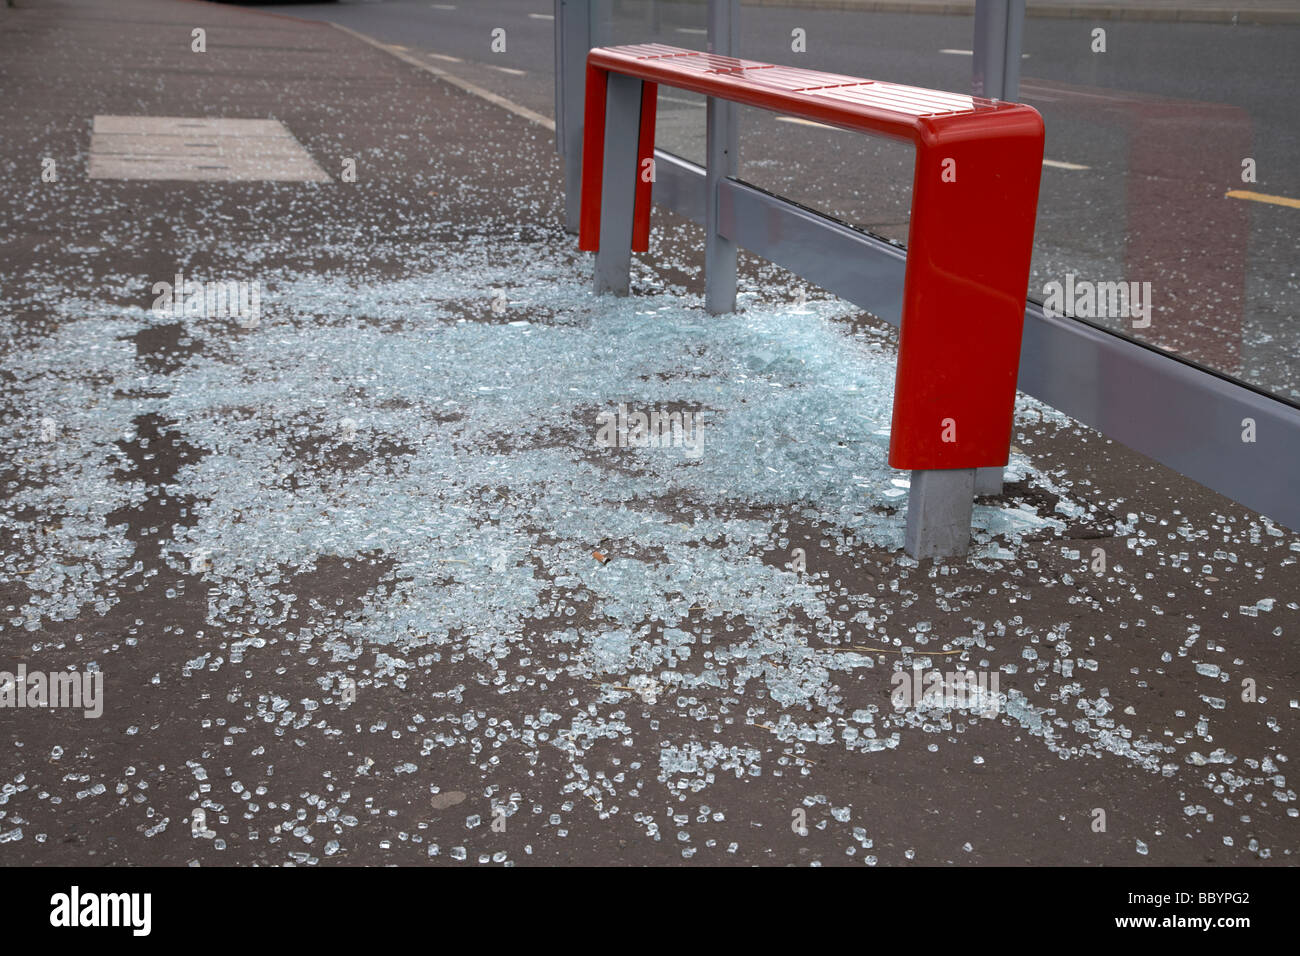 shattered glass lying on the ground from a vandalised bus shelter in northern ireland - Stock Image